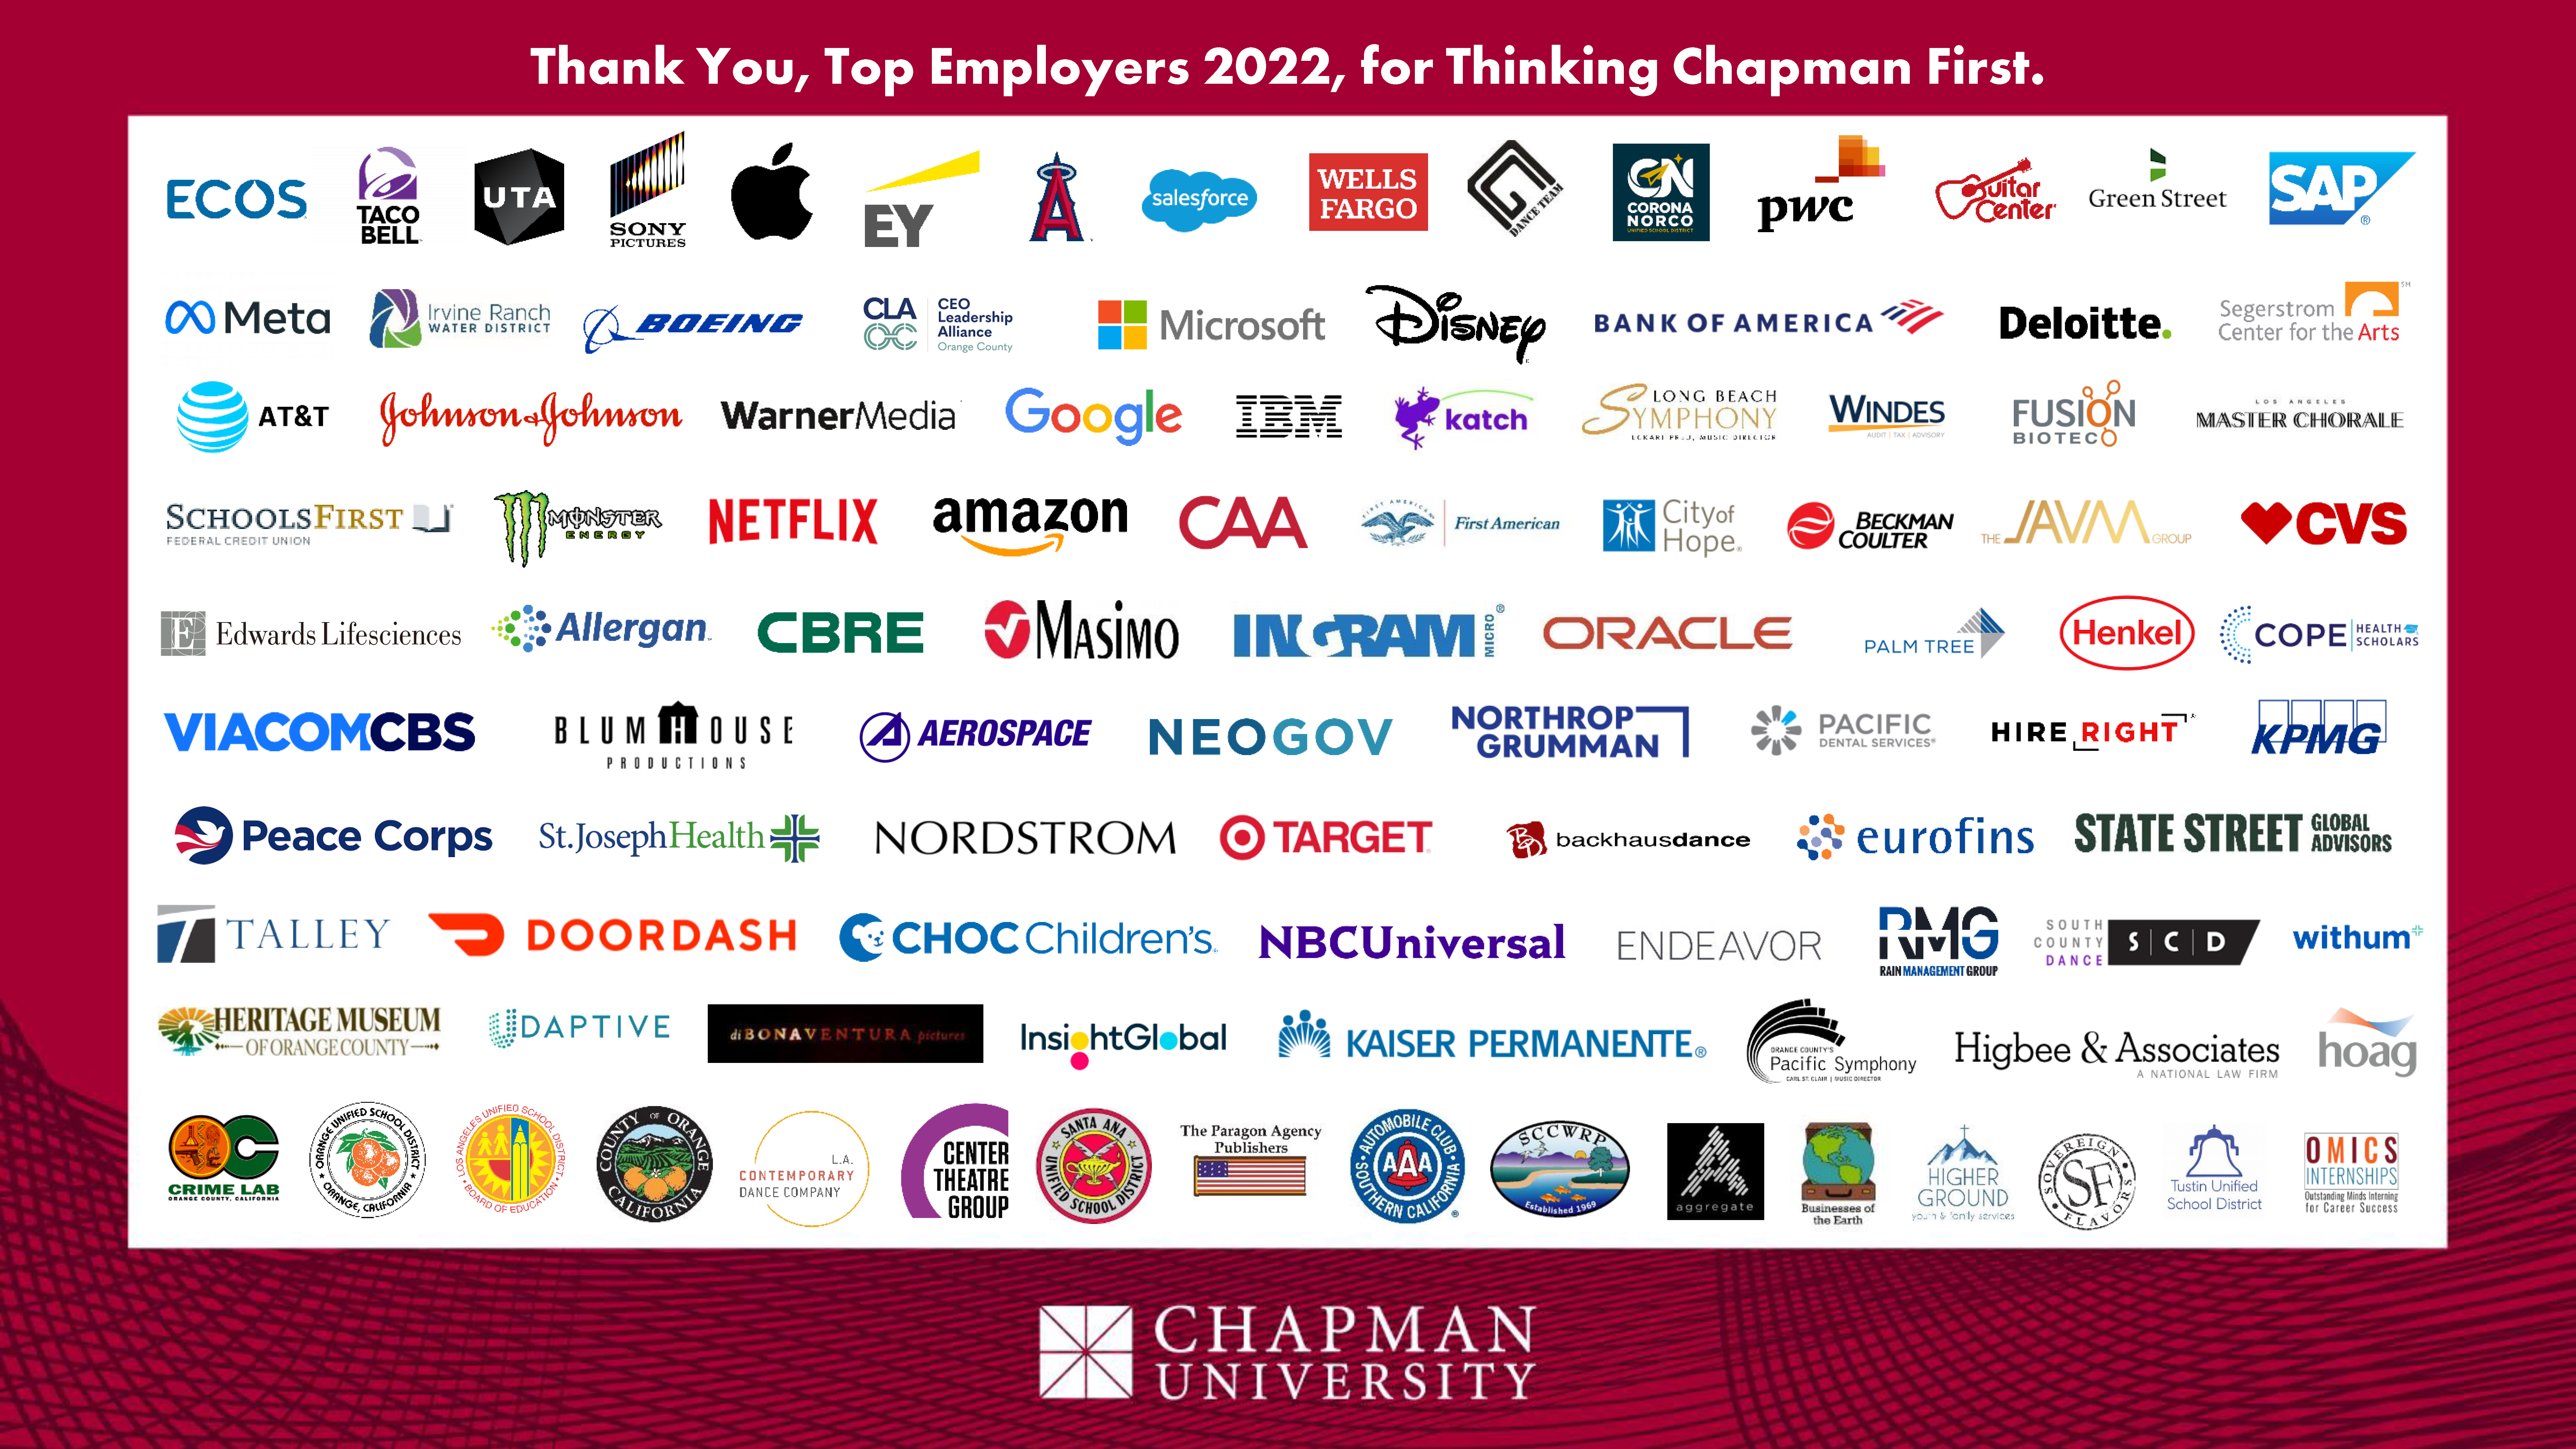 'thank you top employers for thinking chapman first'